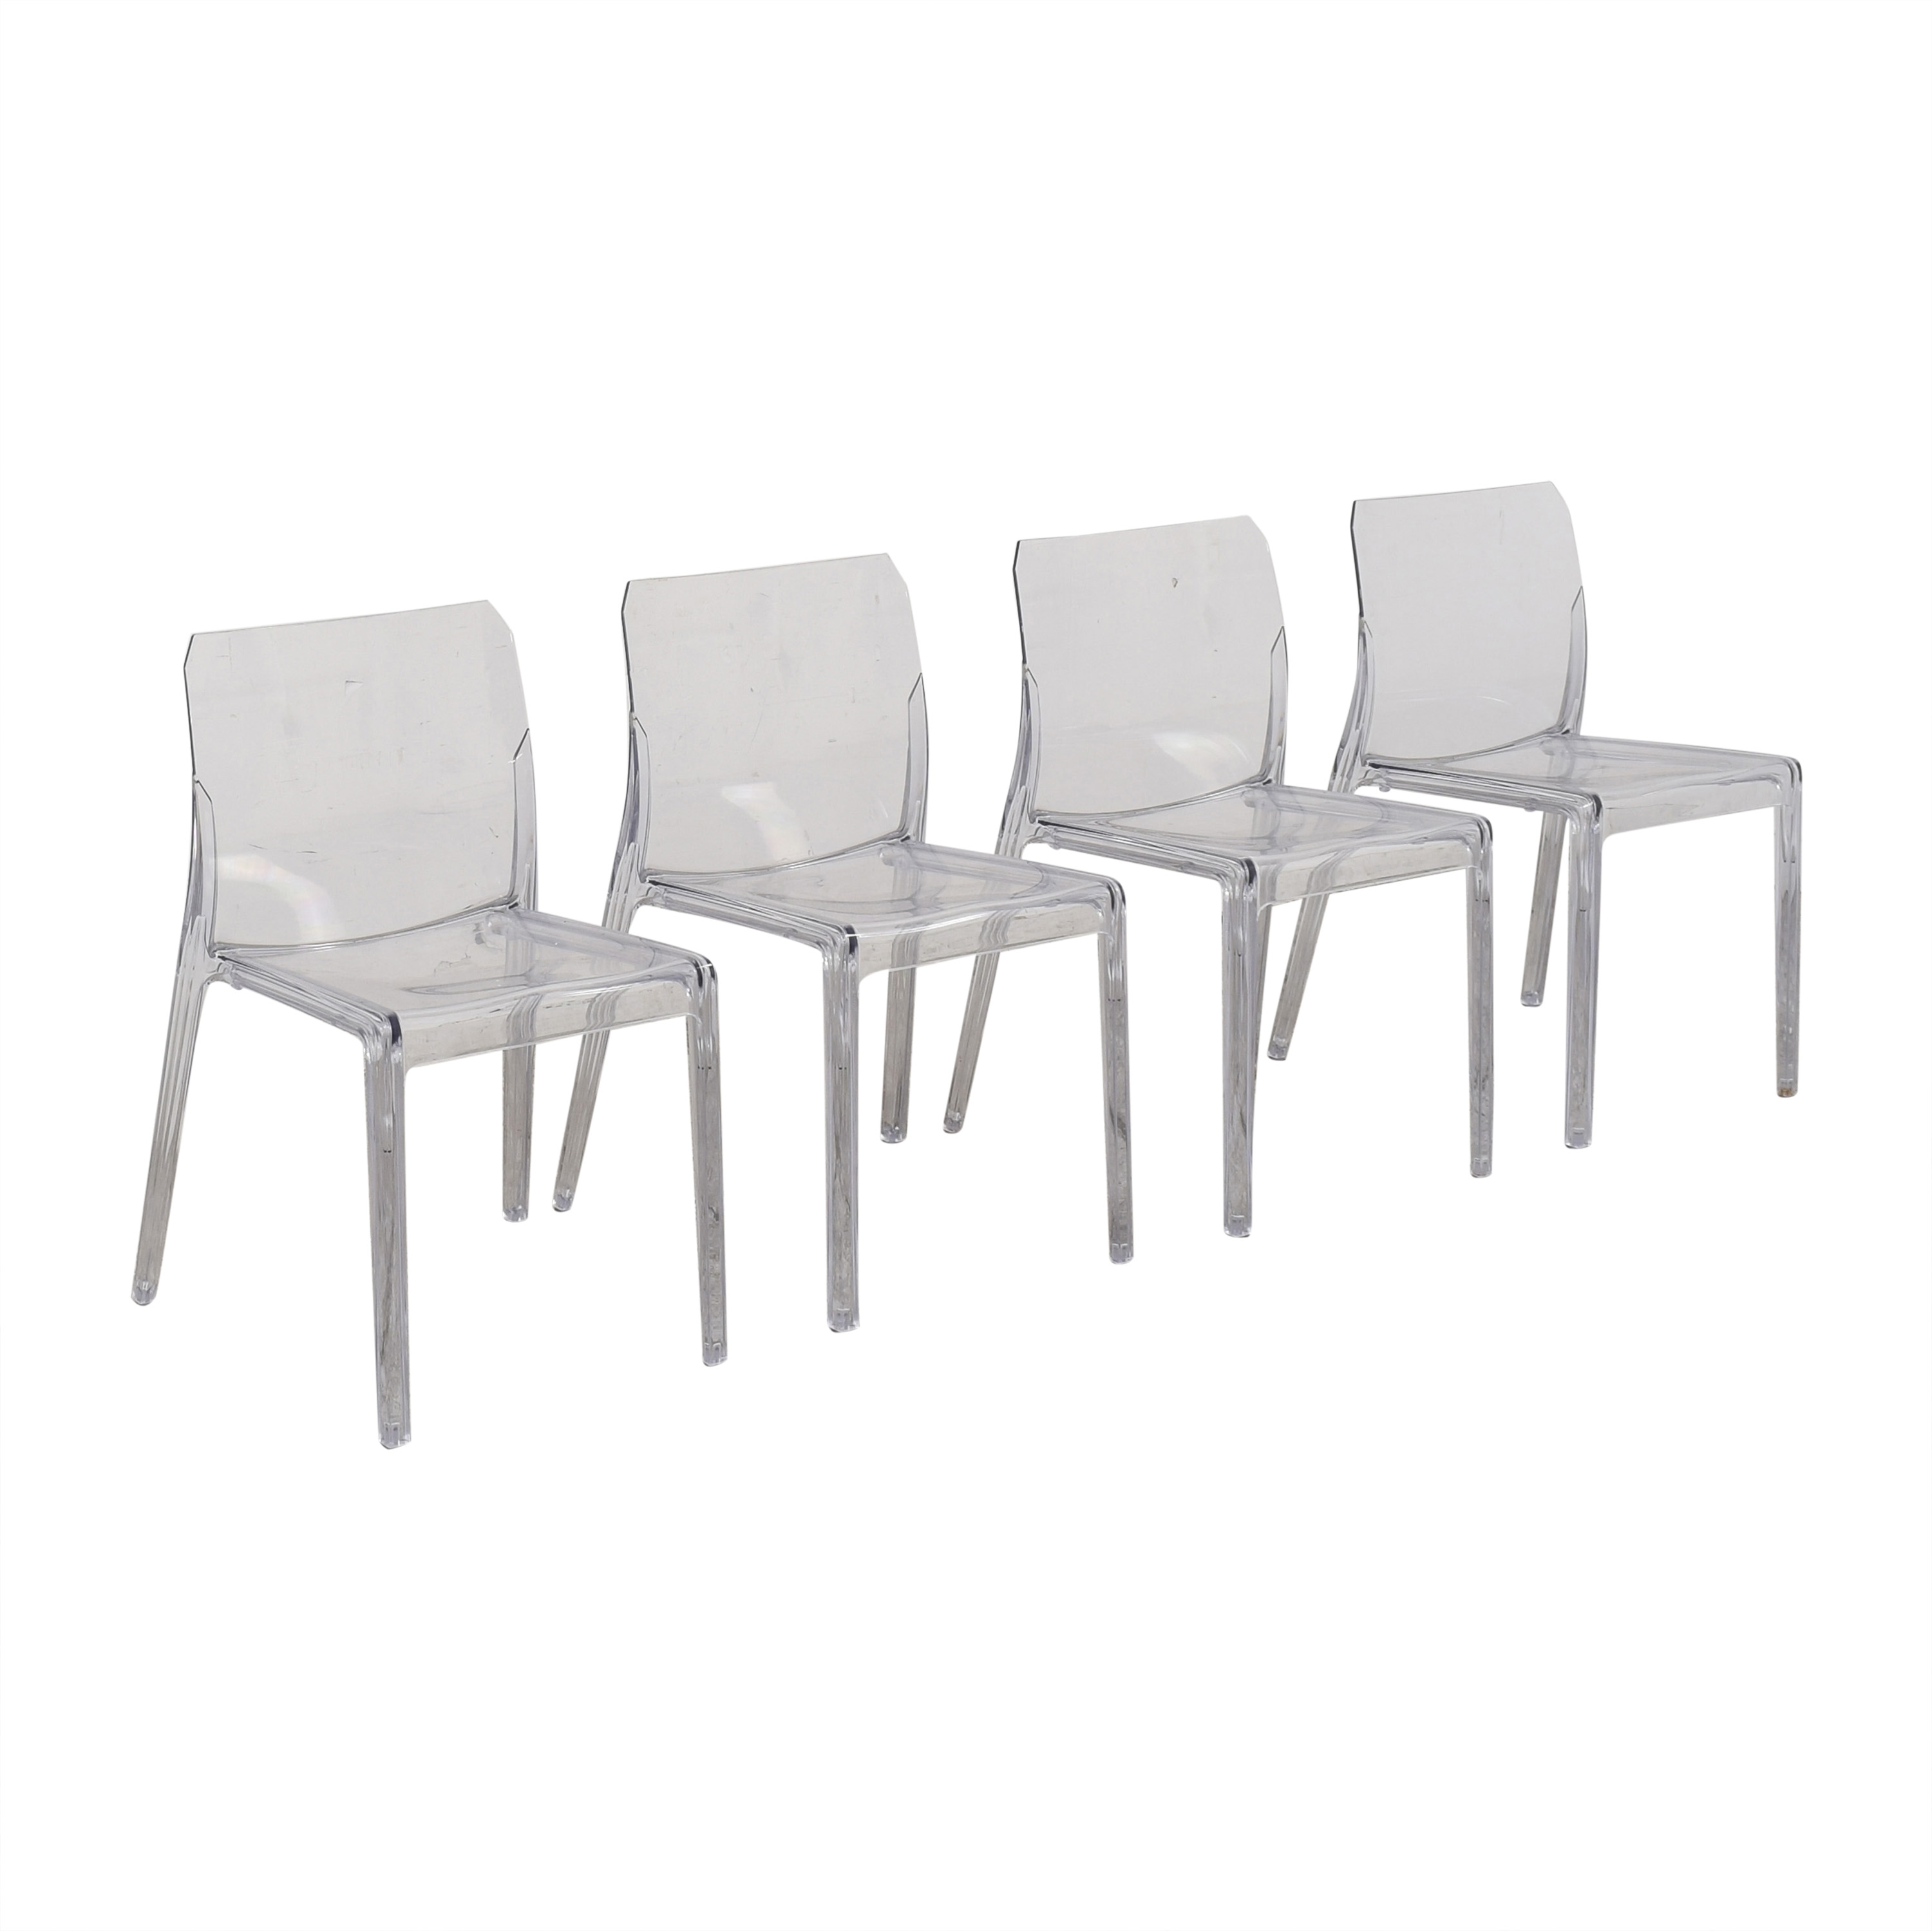 CB2 CB2 Bolla Clear Dining Chairs second hand